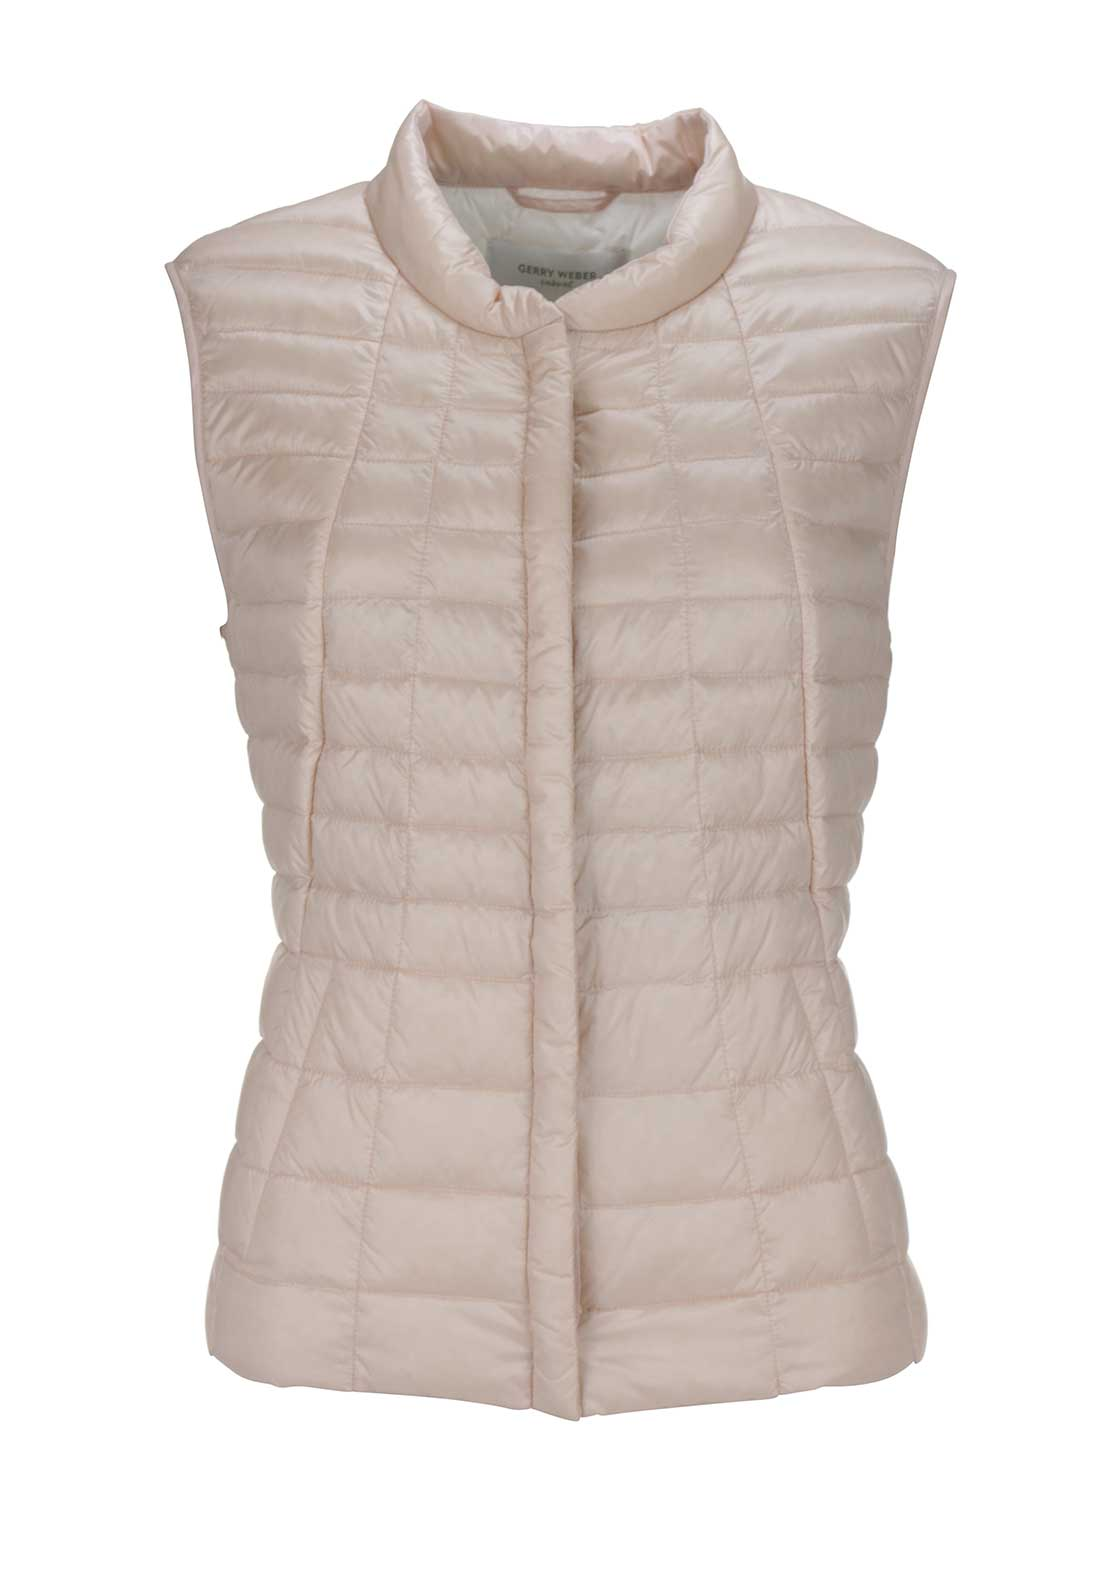 Gerry Weber Editions Padded Gilet, Pink